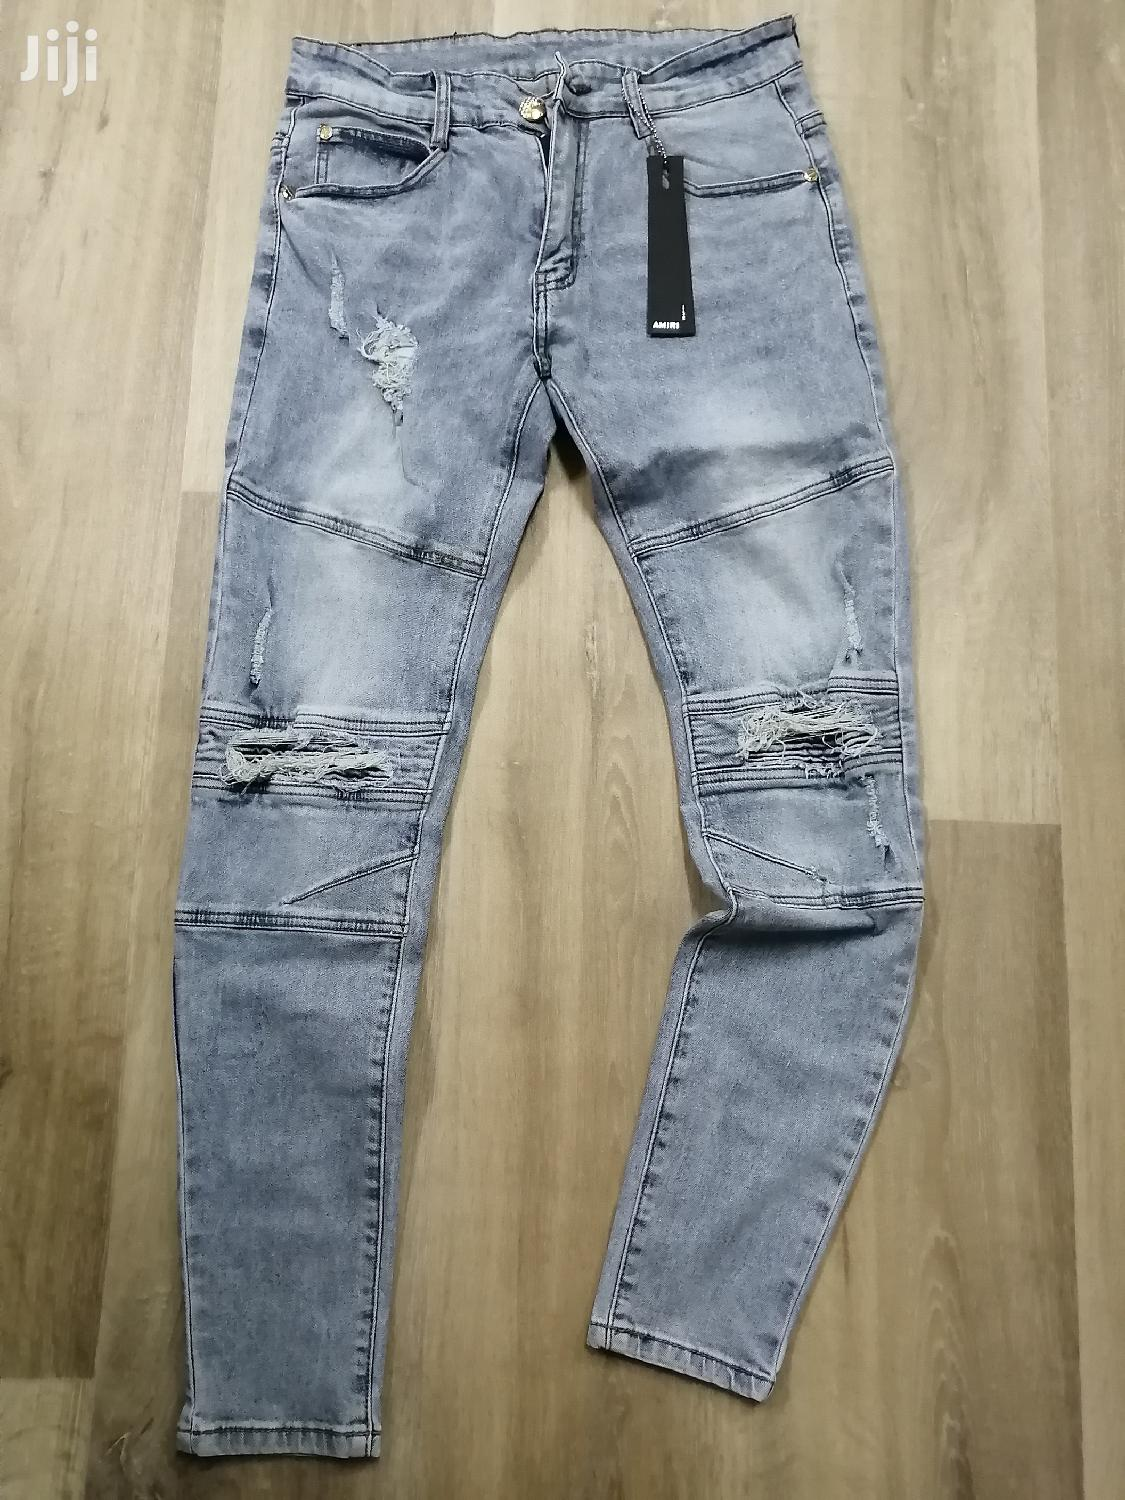 Washed Jeans Available